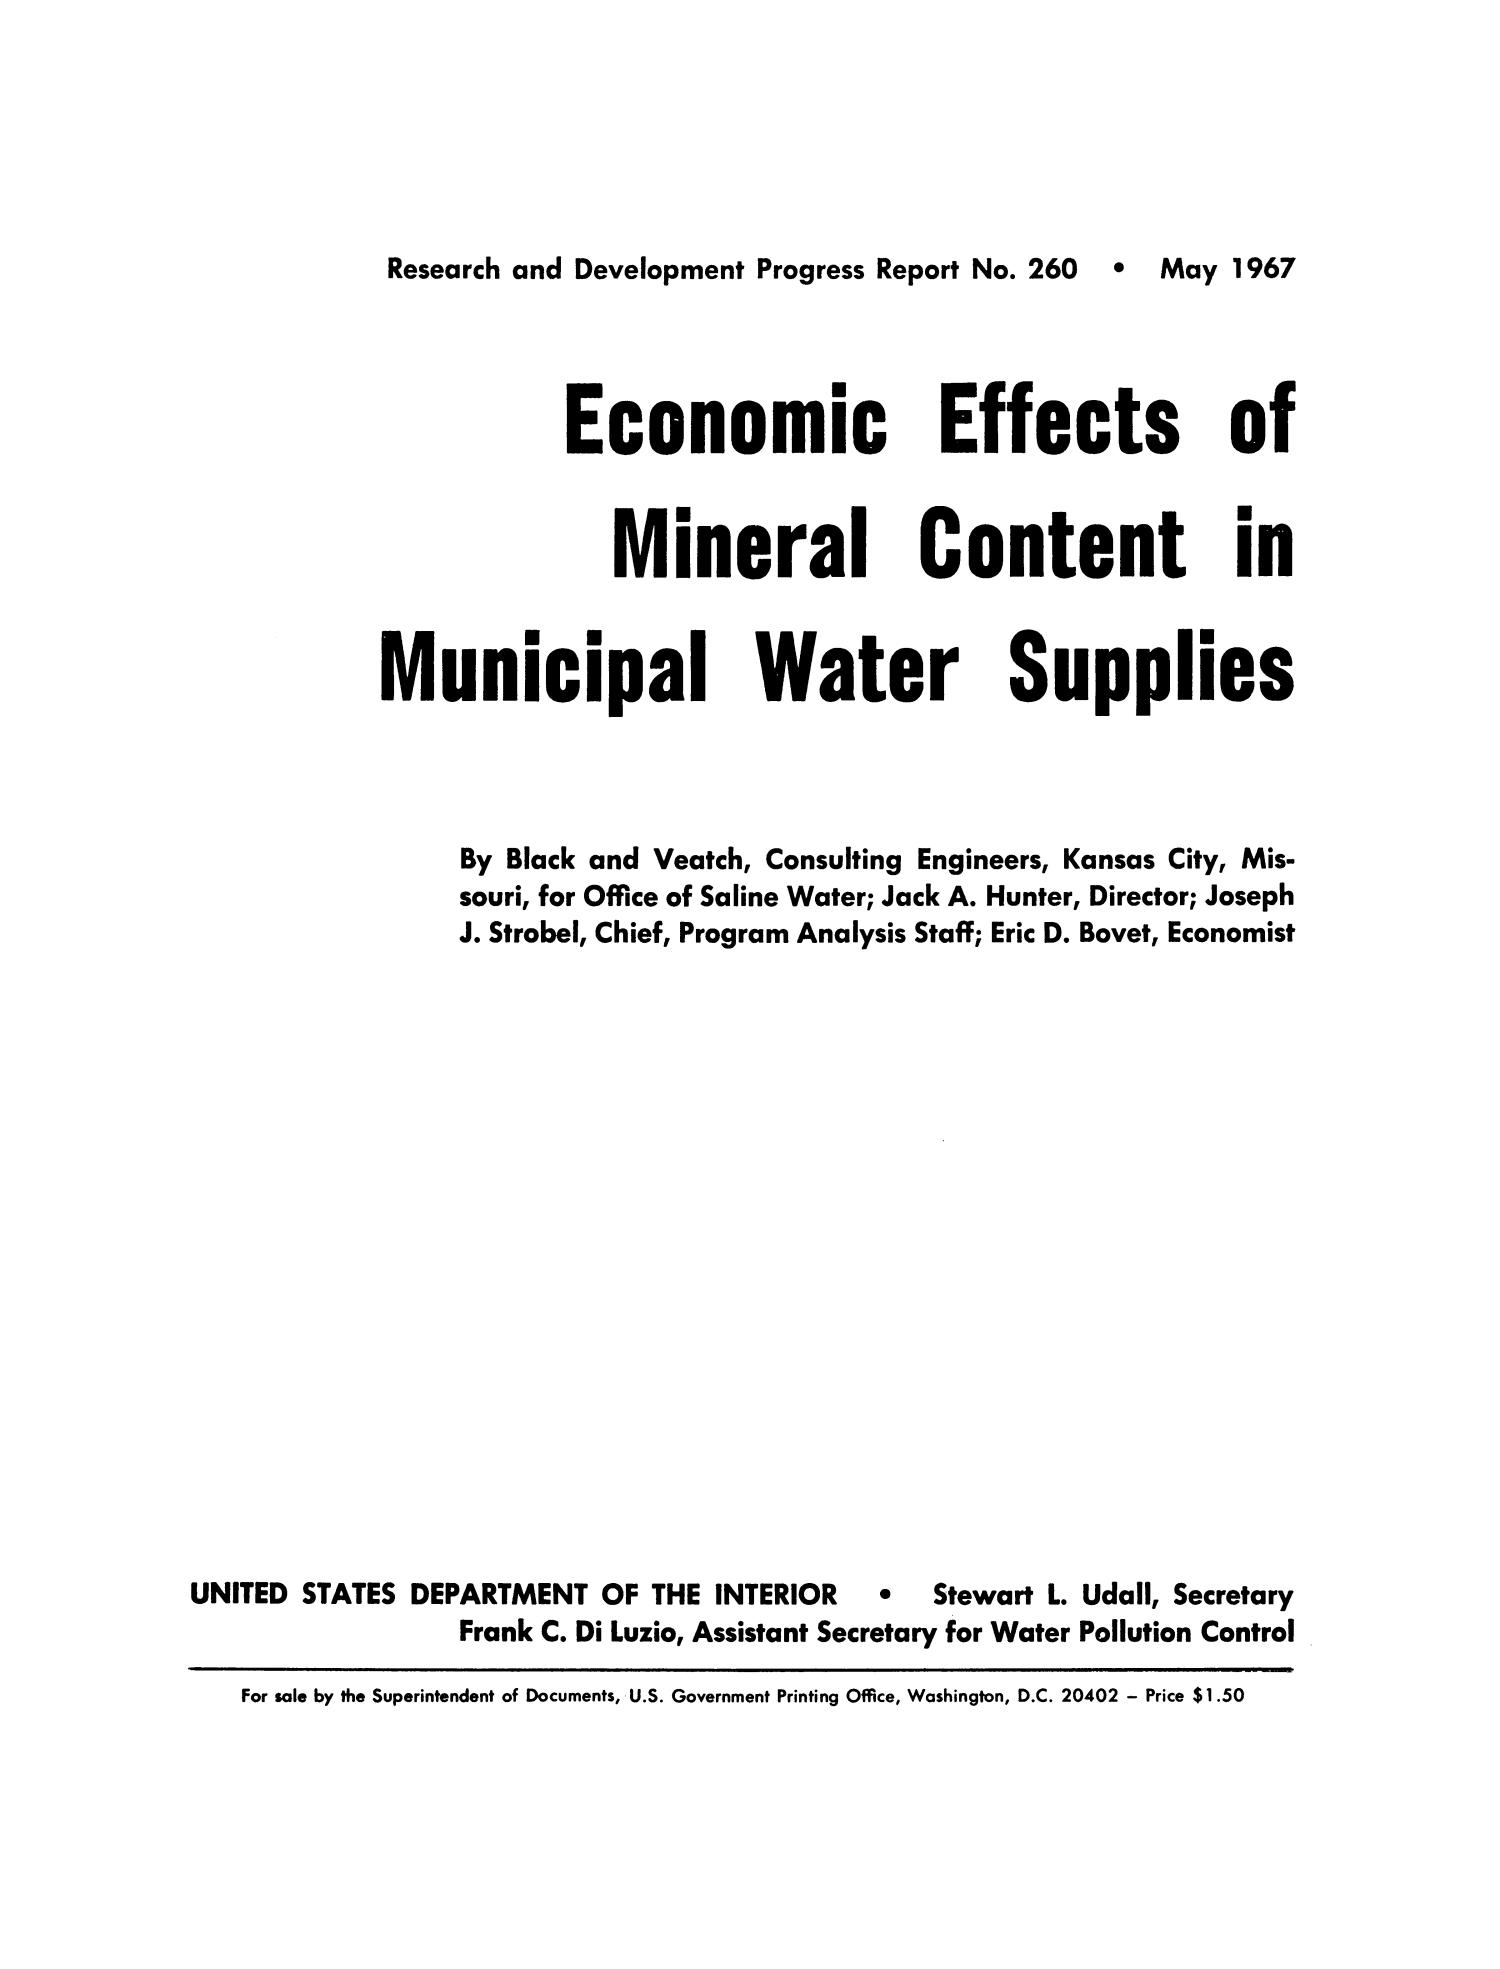 Economic Effects of Mineral Content in Municipal Water Supplies                                                                                                      Ia